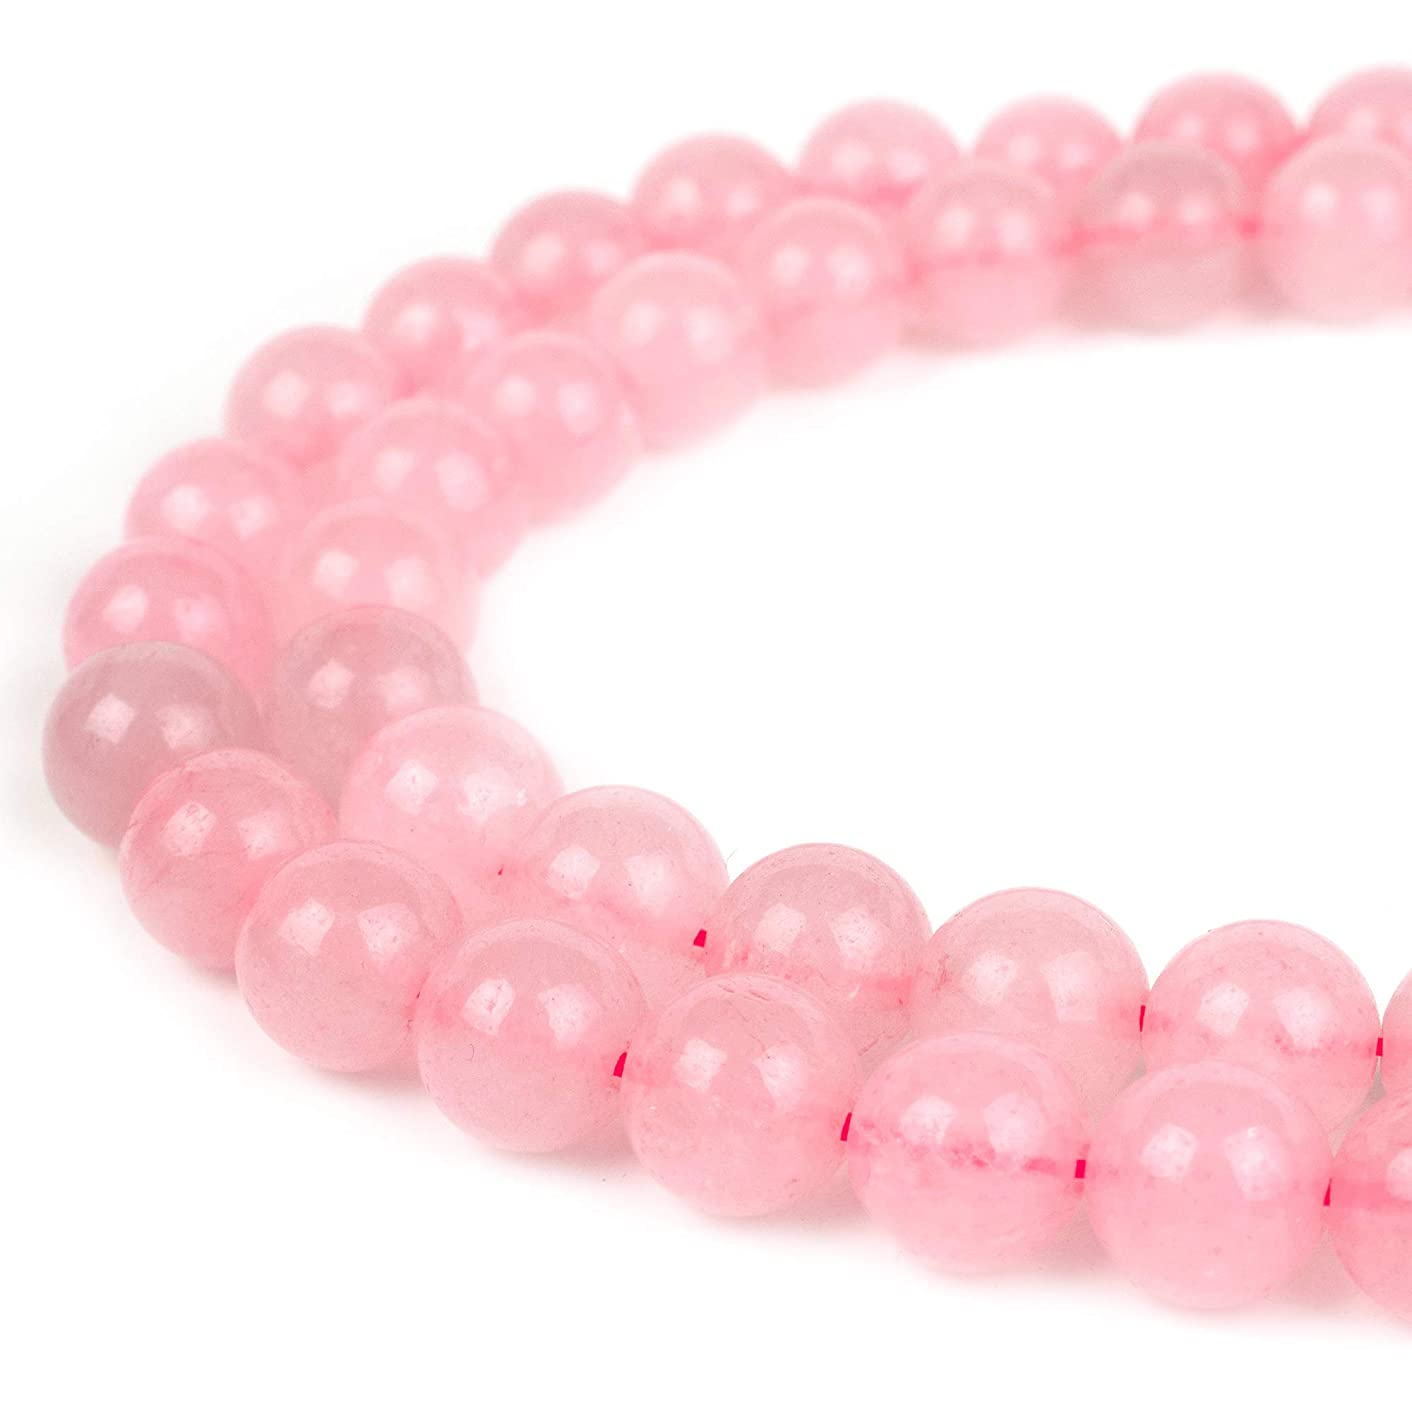 RVG 12mm Natural Rose Quartz Beads Round Gemstone Loose Stone Mala 15.5 in Strand for Jewelry Making (Approx 30-32 pcs)